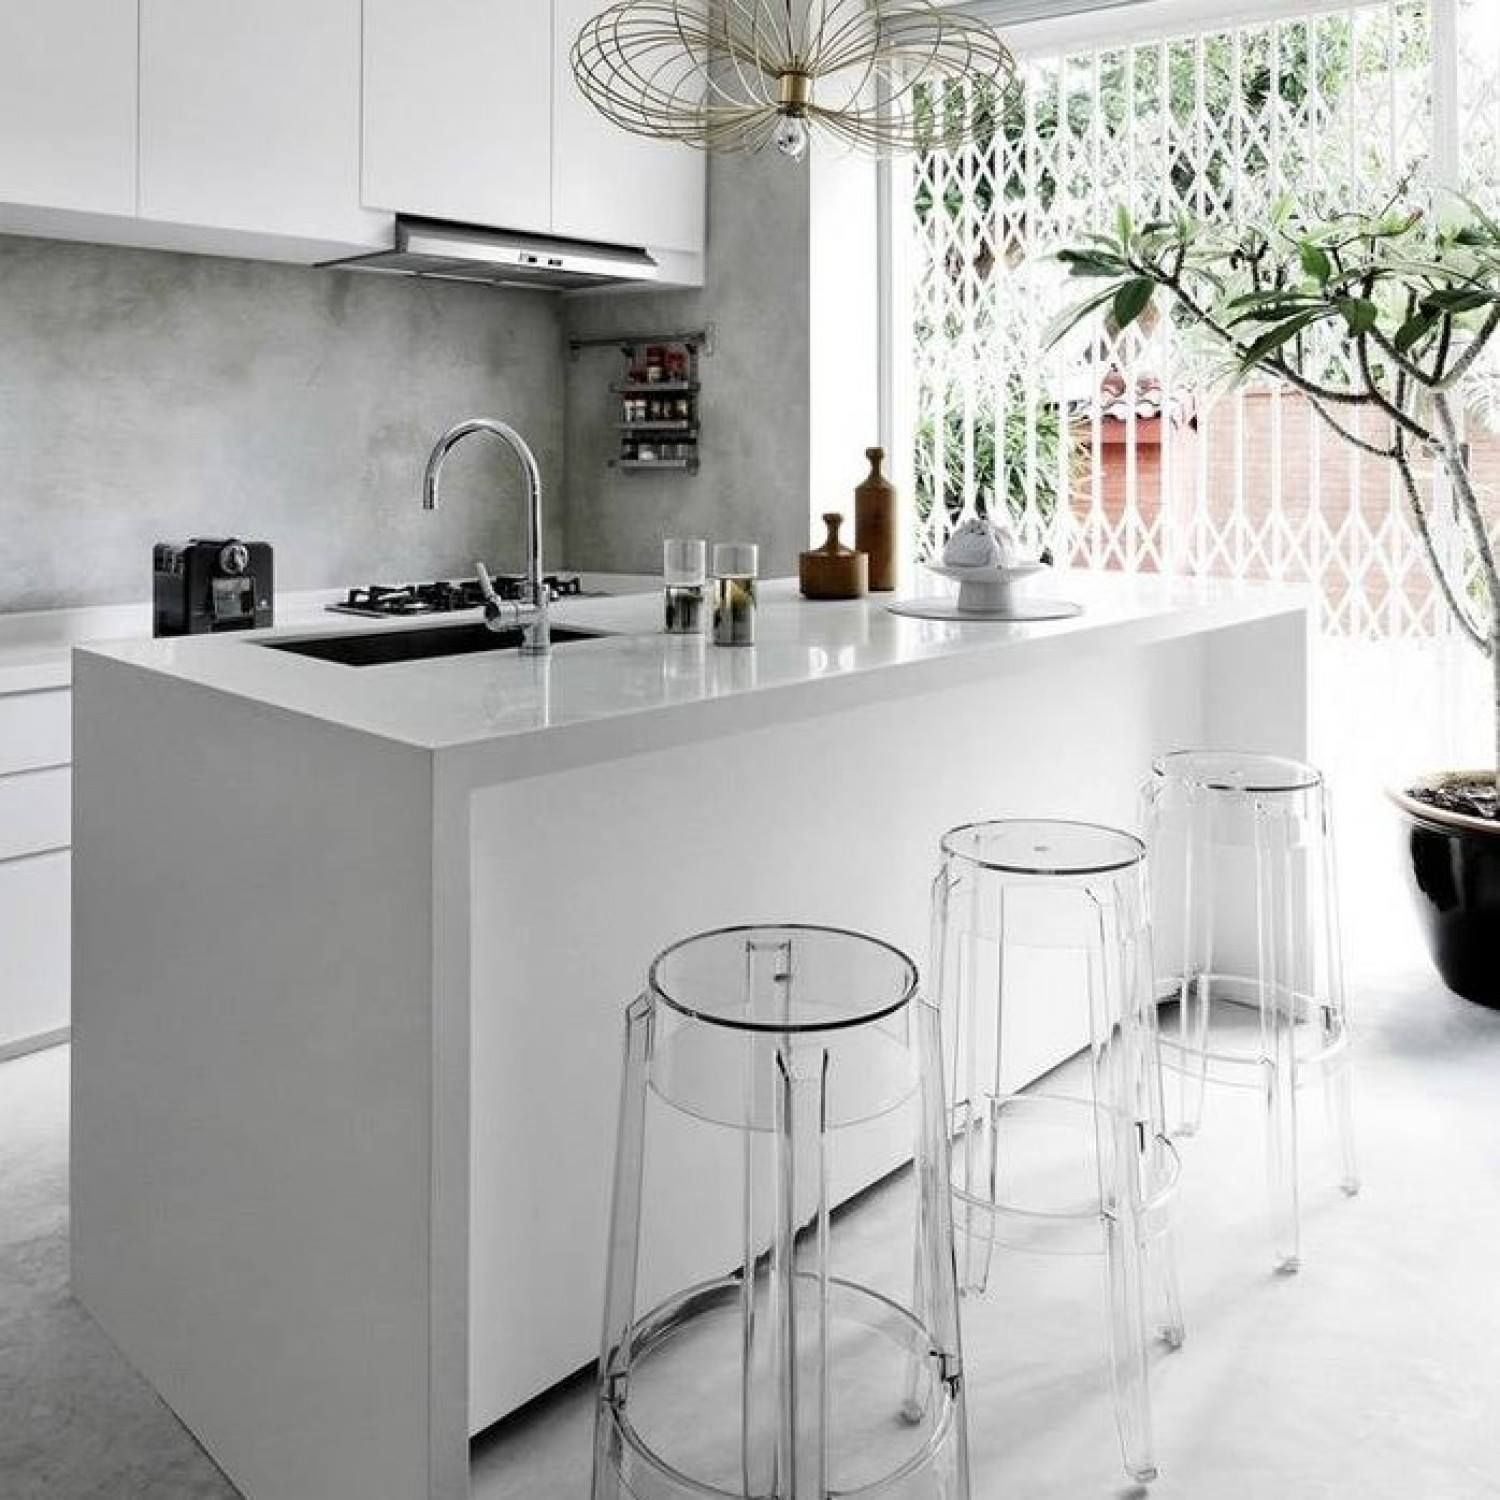 charles ghost barstool designed by philippe starck in 2005 for kartell get the originals - Philippe Starck Kitchen